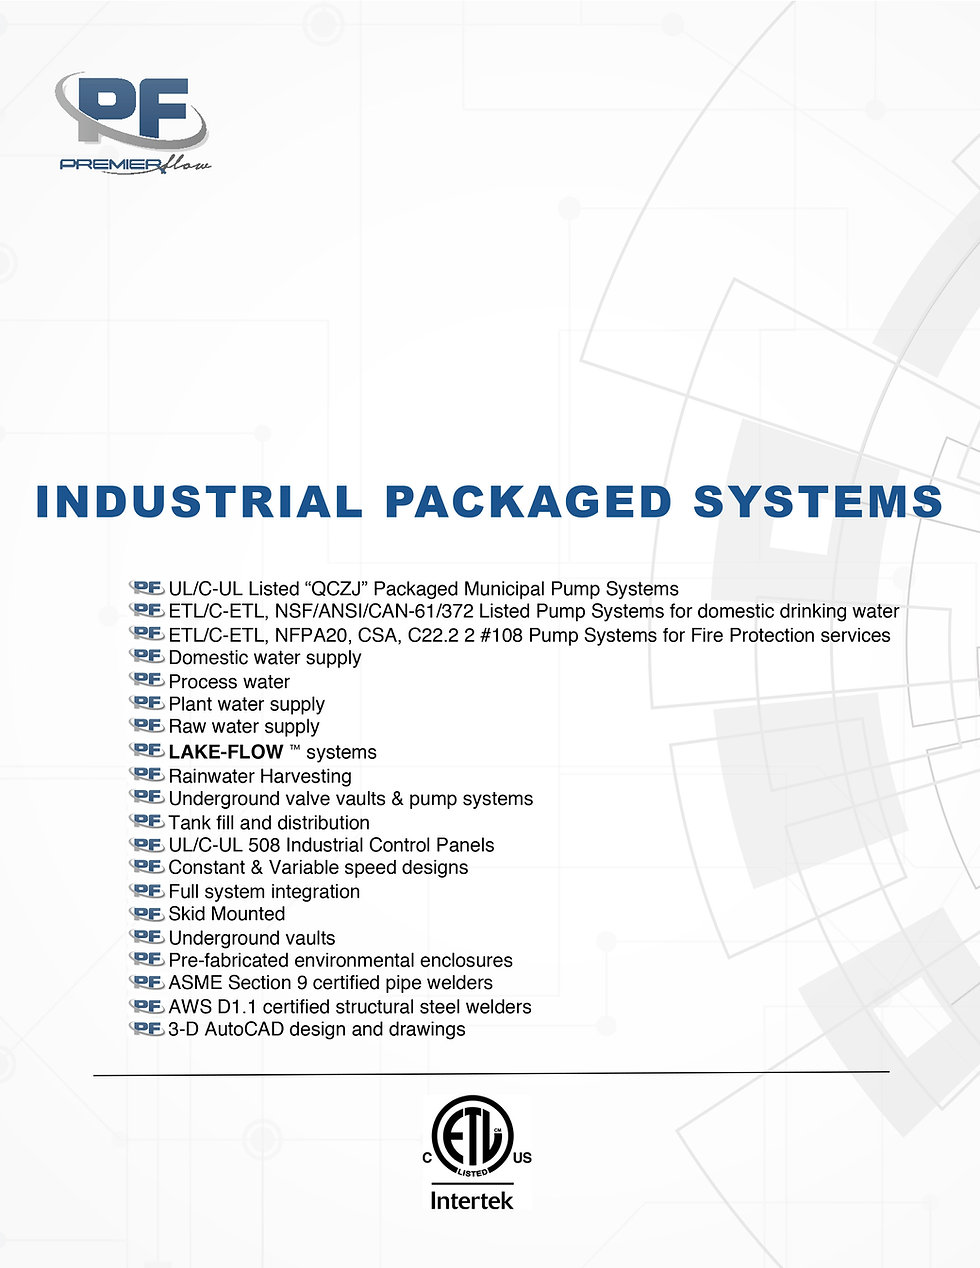 Industrial packaged systems.jpg